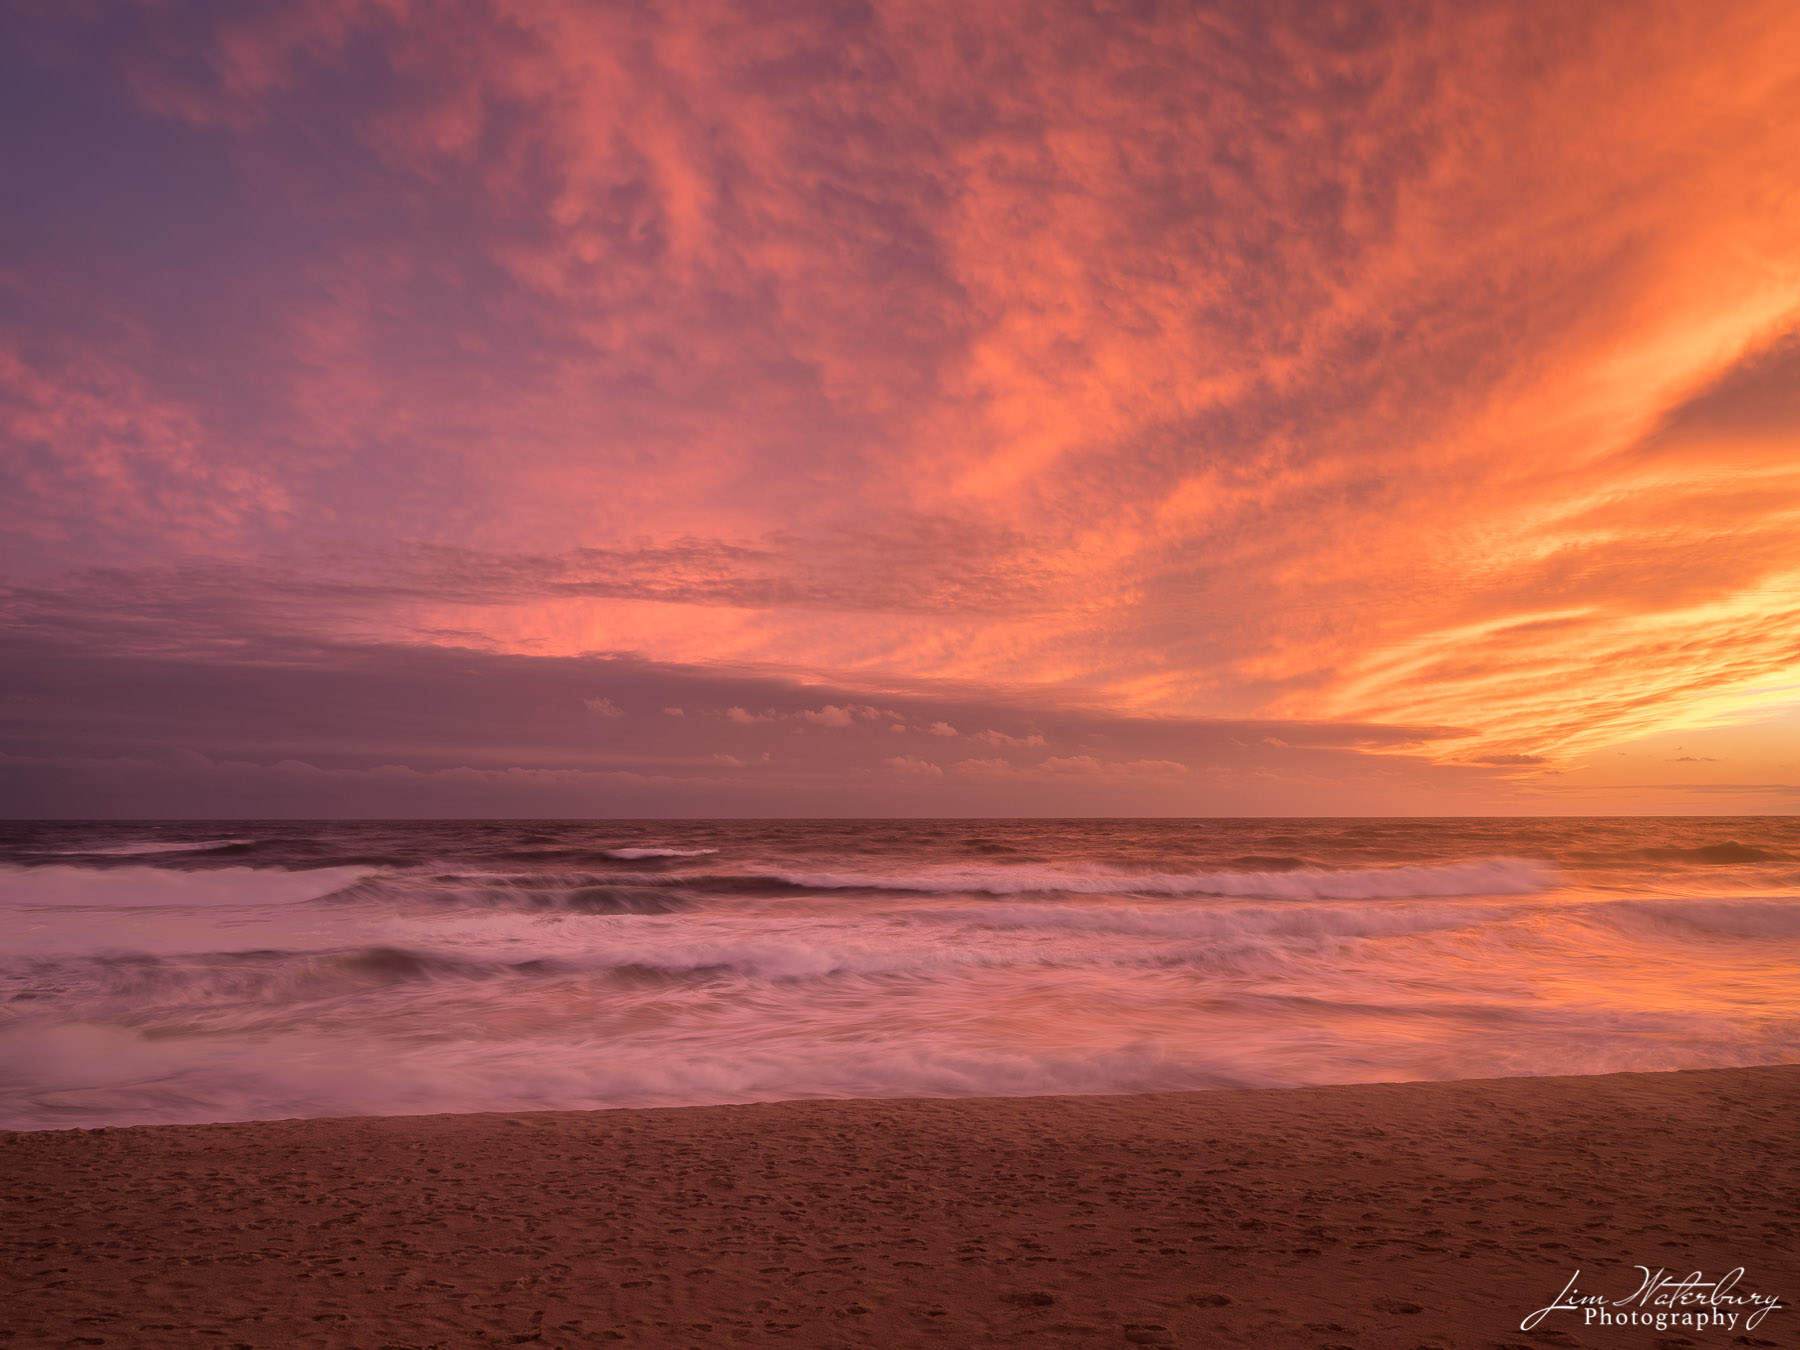 sunset, ocean, surf, pink, orange, fall, photo